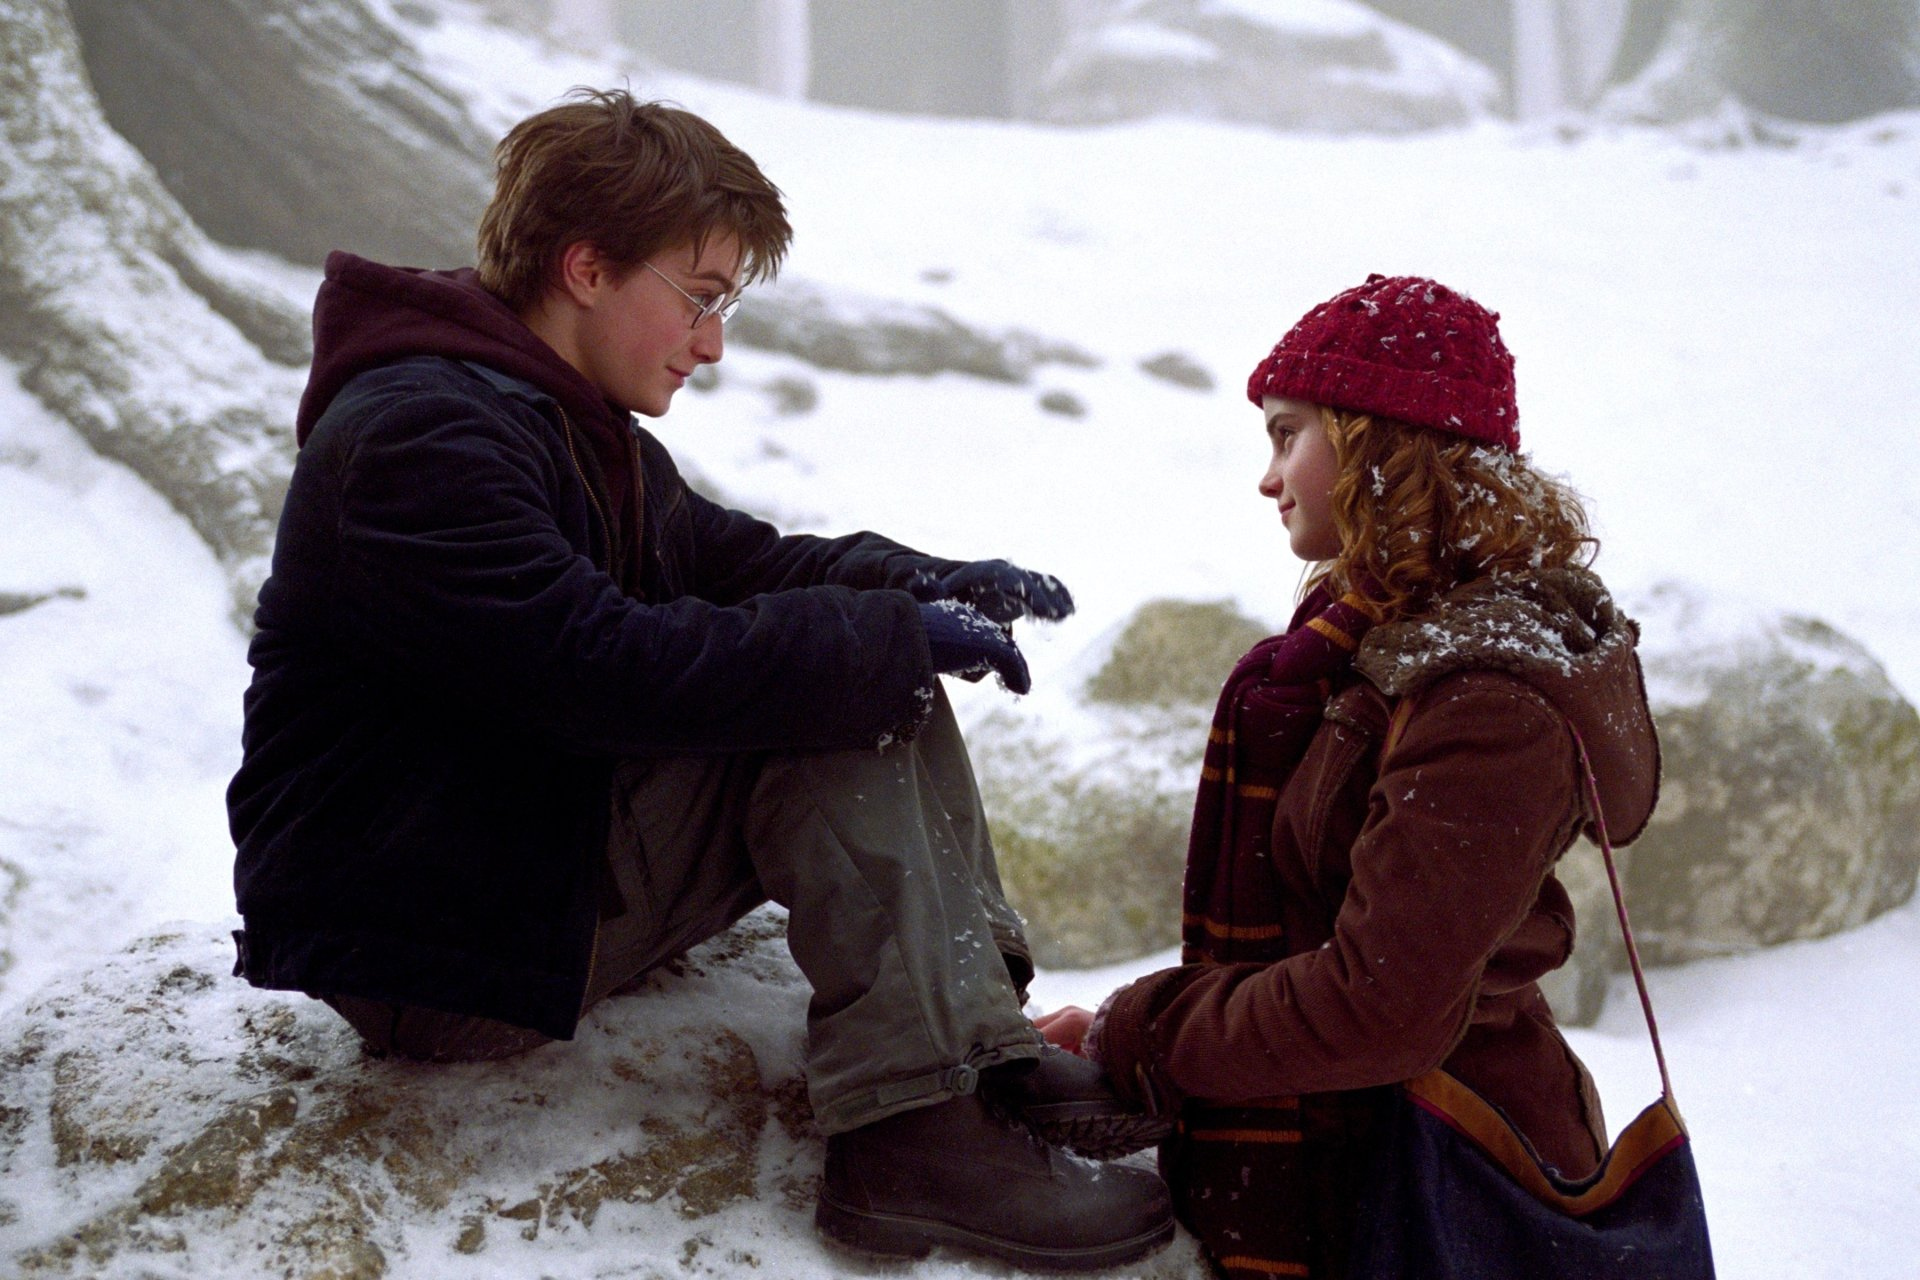 Harry-and-Hermione-in-a-snowy-area